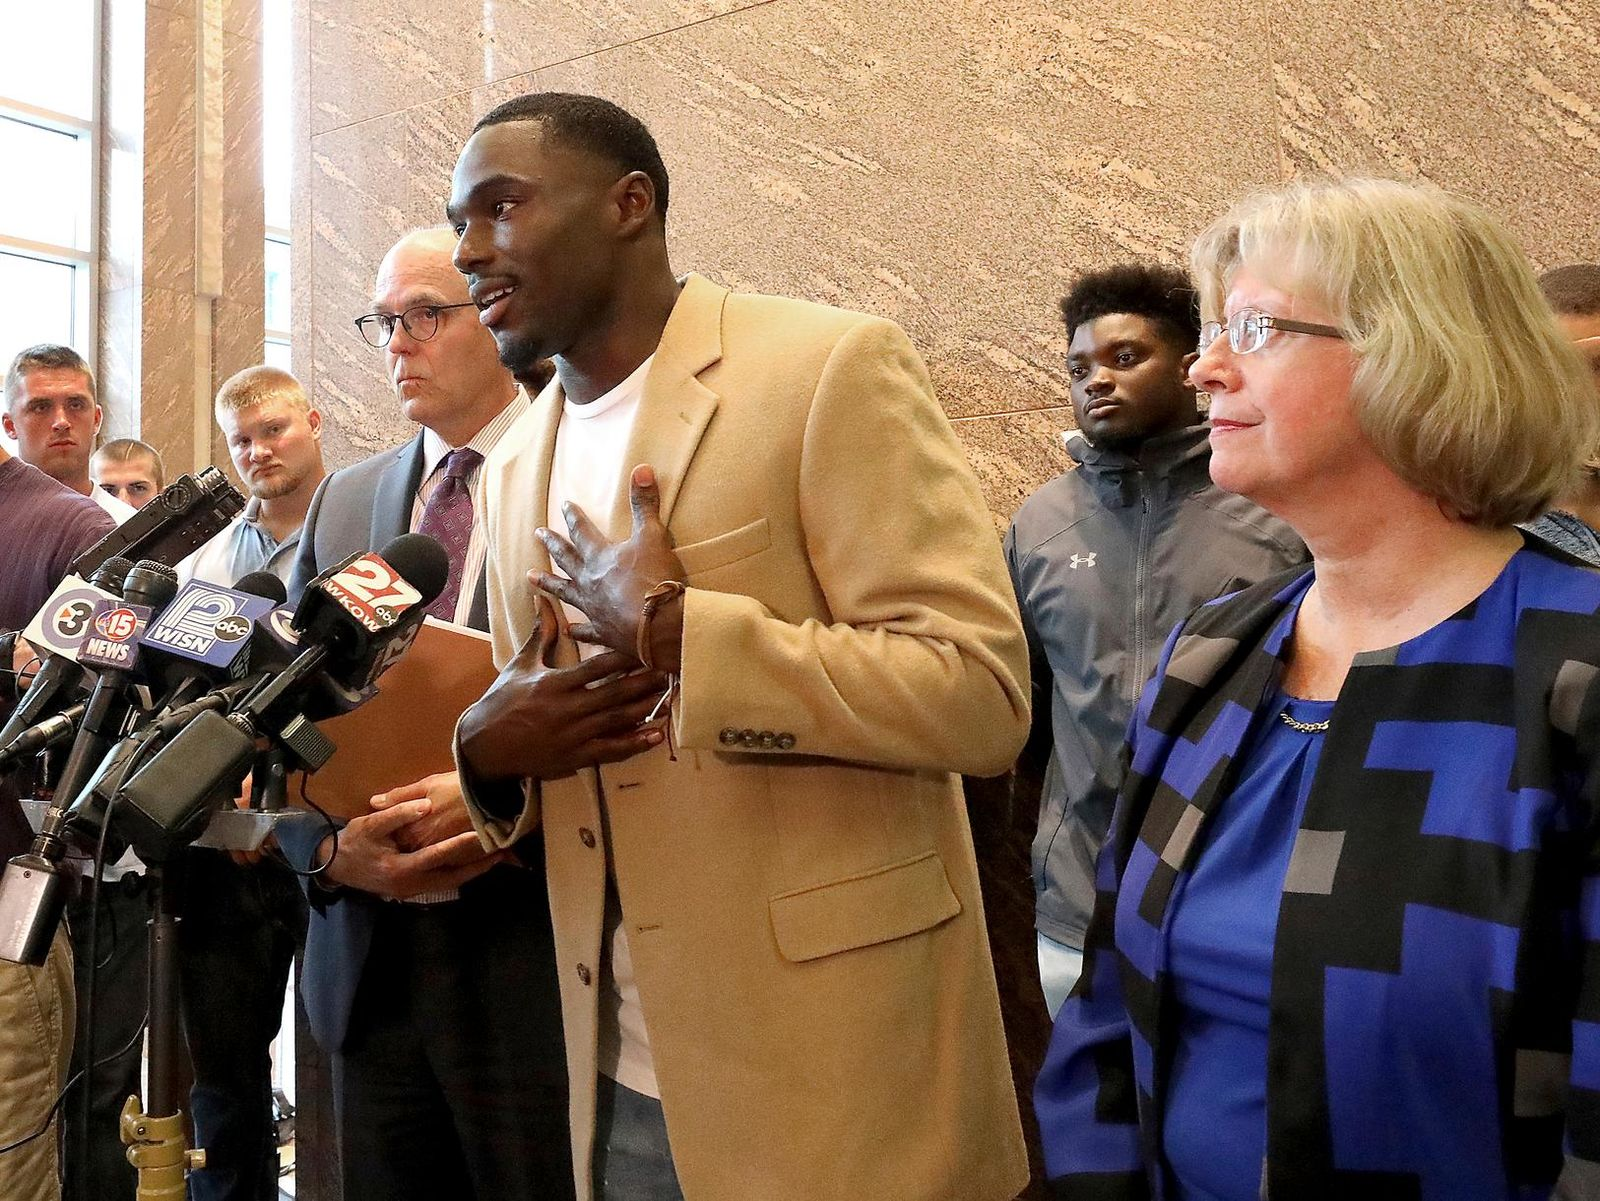 Former Wisconsin Badger football player Quintez Cephus speaks during a press conference to reiterate his request for reinstatement to the university in Madison, Wis. Monday, Aug. 12, 2019. (John Hart/Wisconsin State Journal via AP)